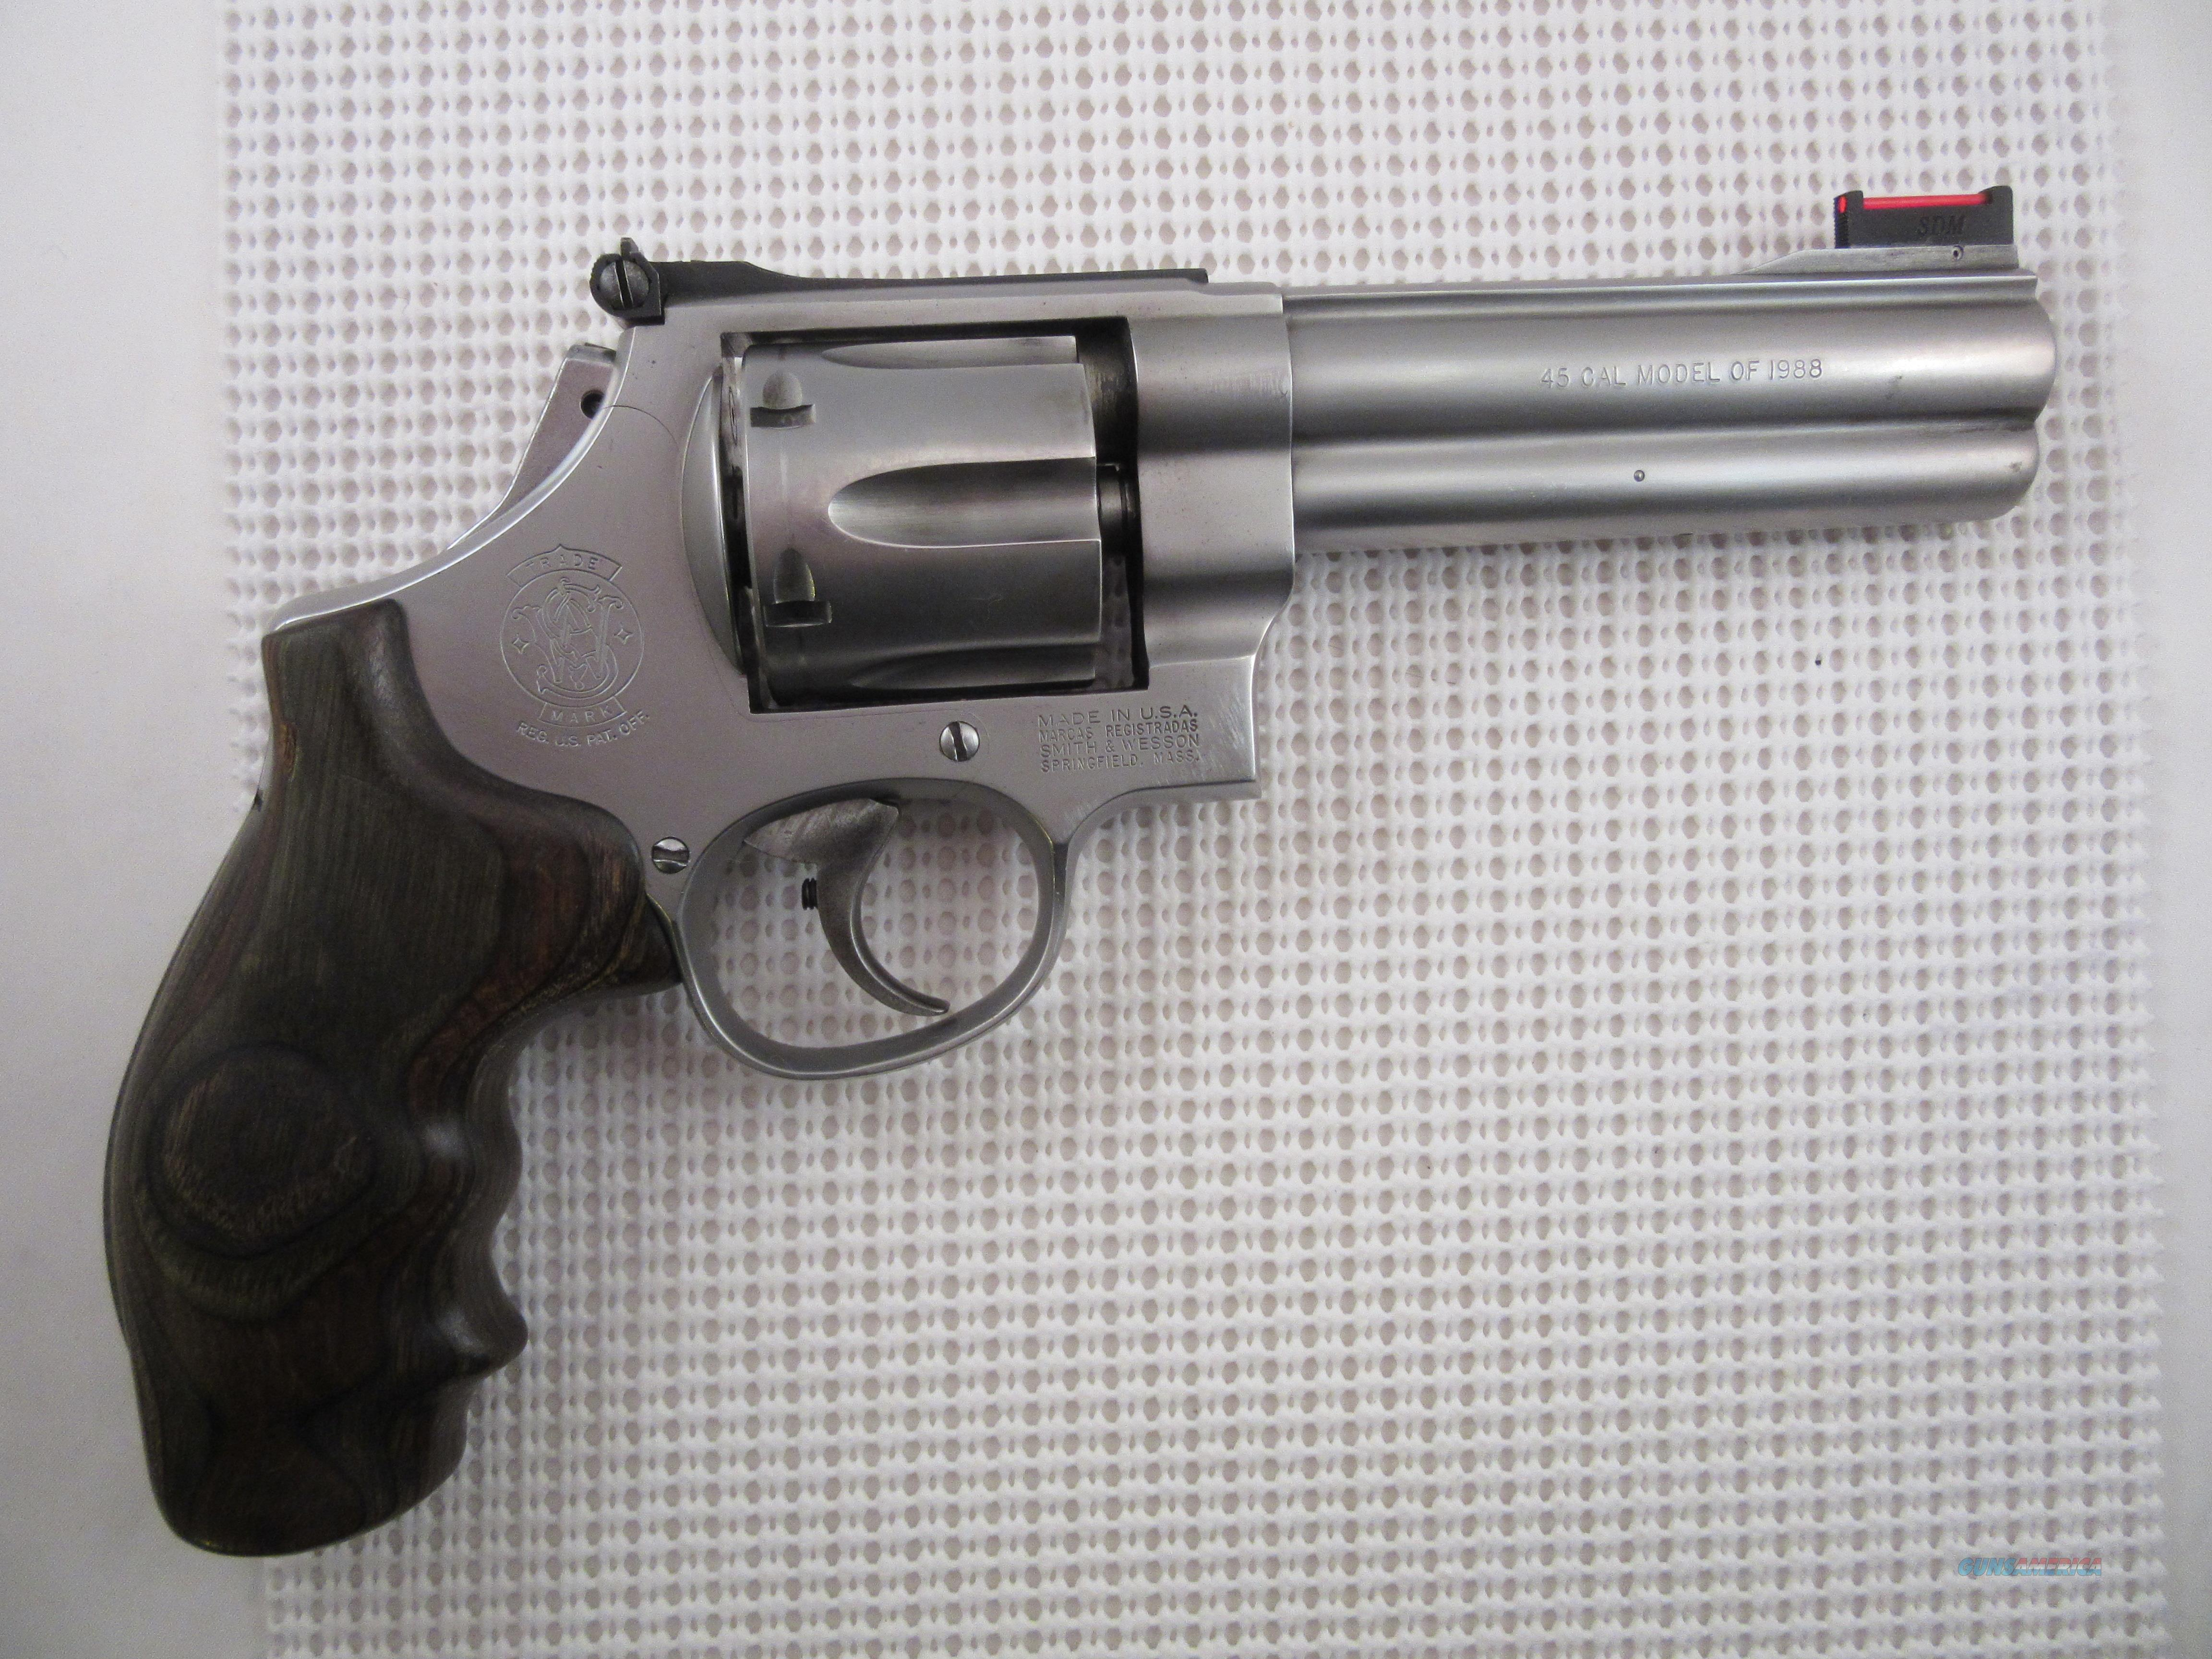 S&W 625 Revolver with Belt, Holster, Moon Clips & more  Guns > Pistols > Smith & Wesson Revolvers > Full Frame Revolver